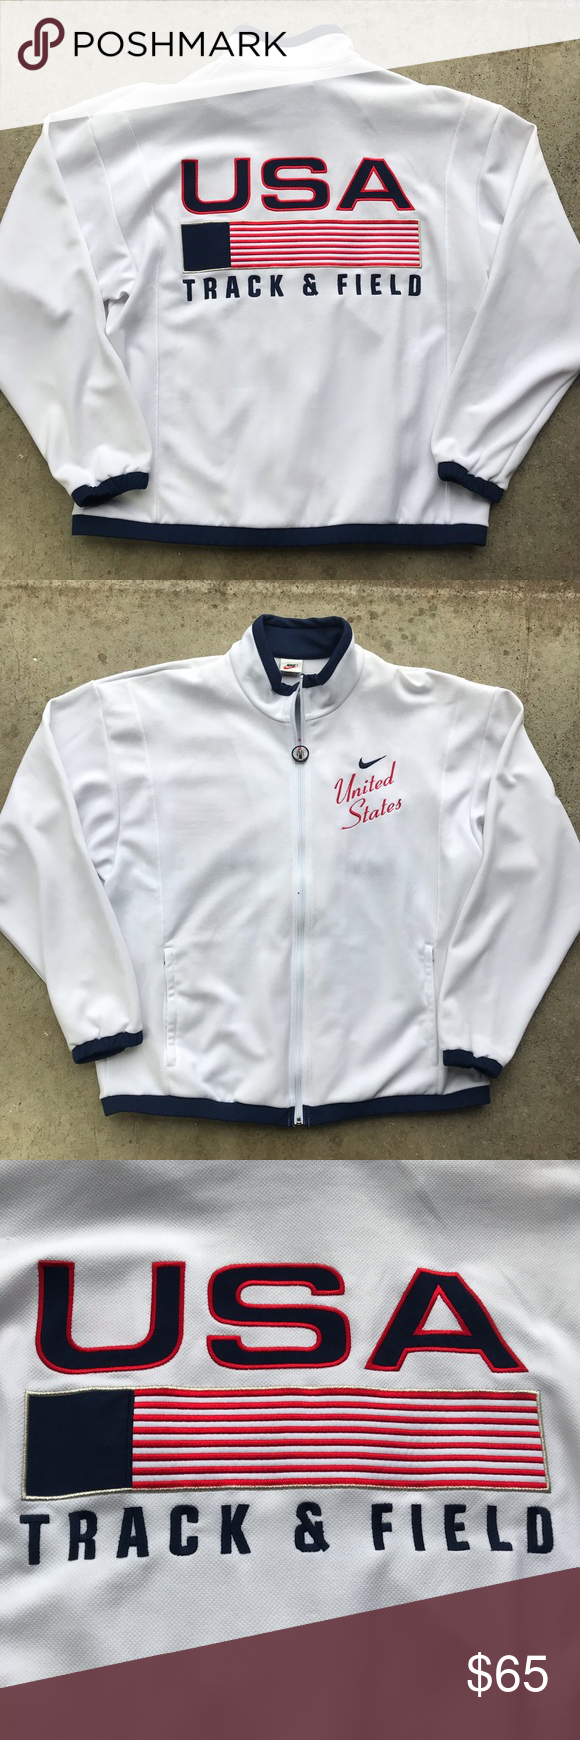 Vintage Nike Usatf Jacket 1996 Olympics This Is The Original 1996 Usa Made Olympic Nike Team Usa Track And Field Warm Up Vintage Nike Jackets Clothes Design [ 1740 x 580 Pixel ]